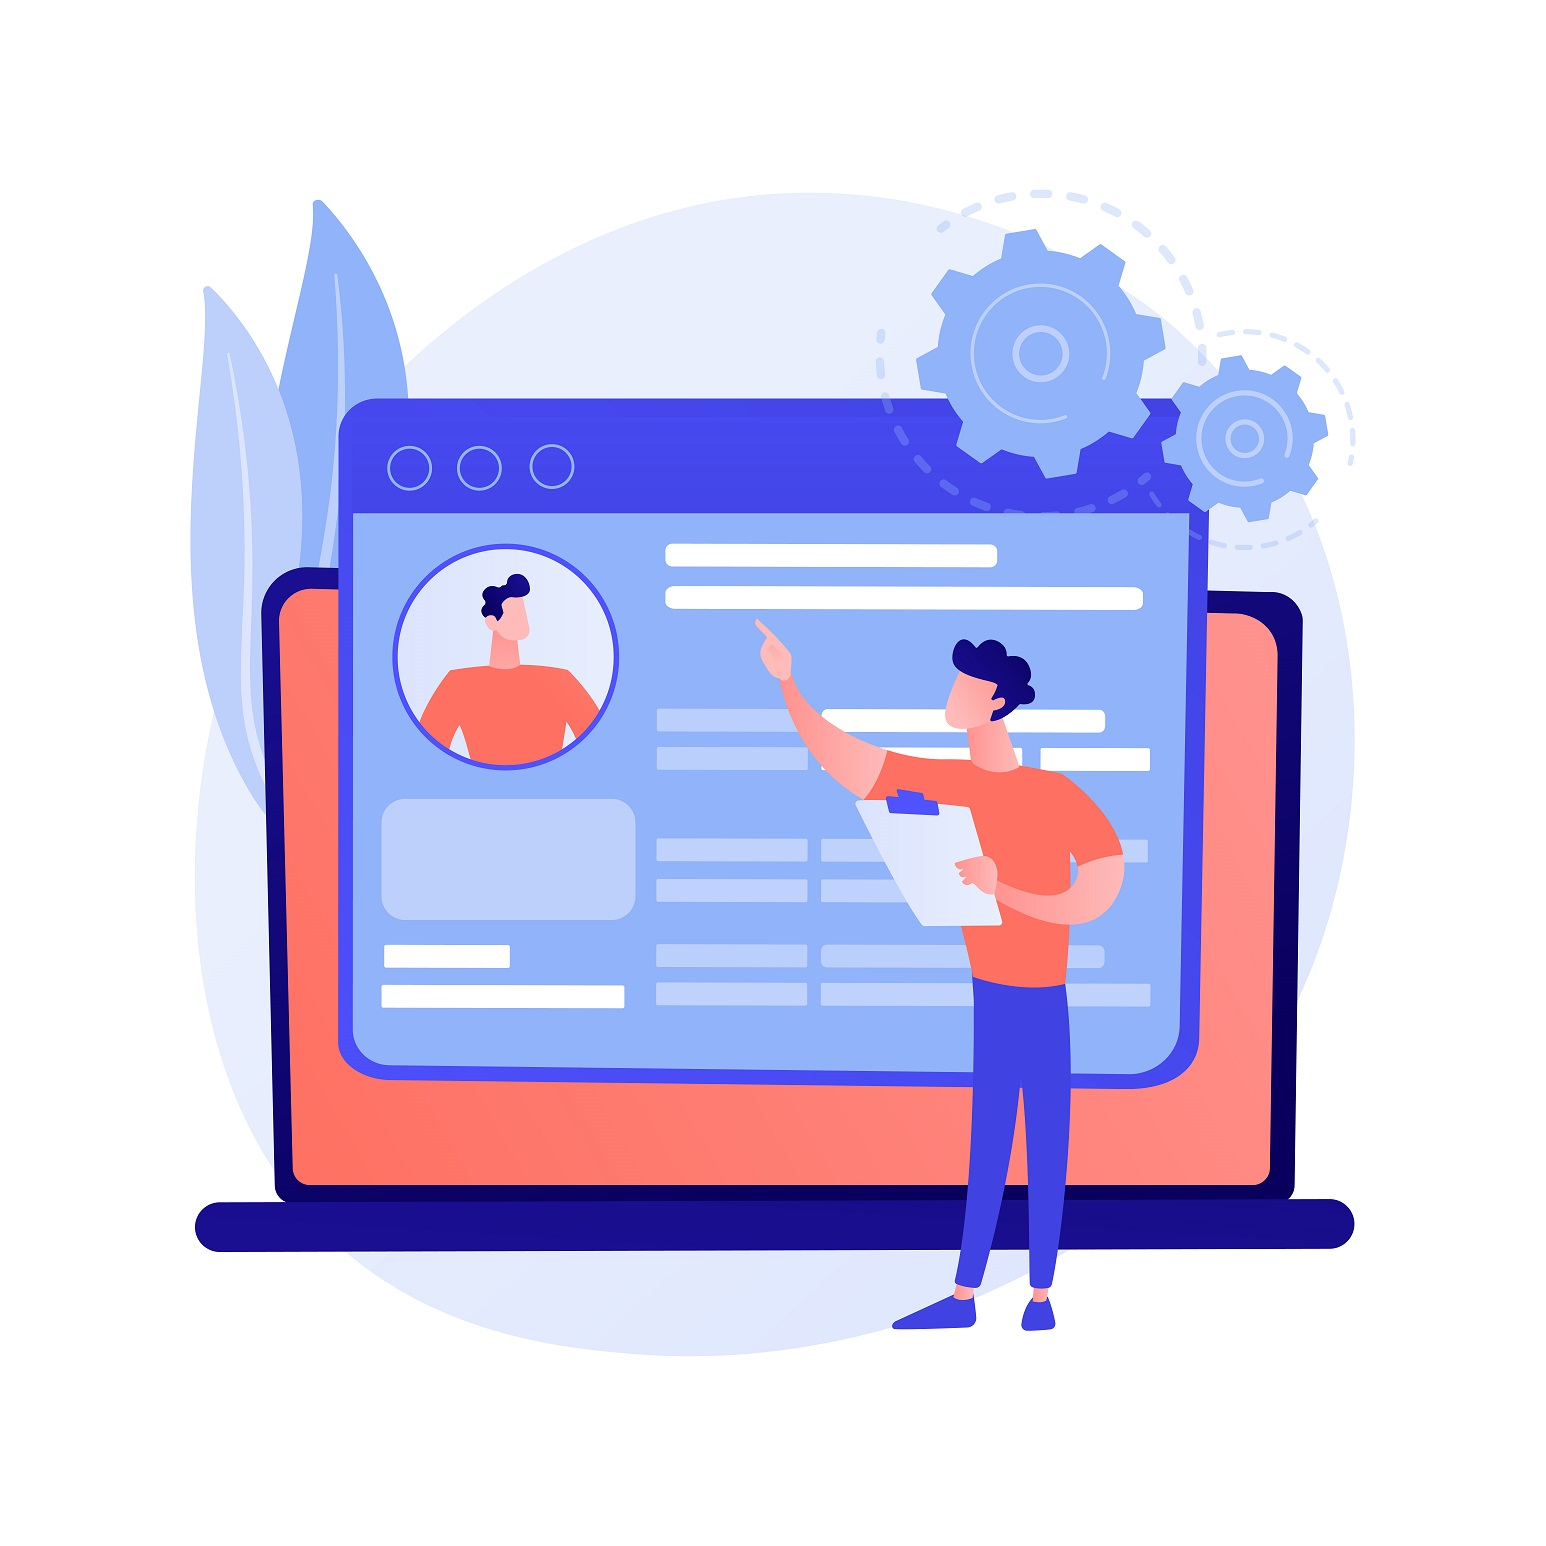 Landing Page Vector Illustration created by vectorjuice